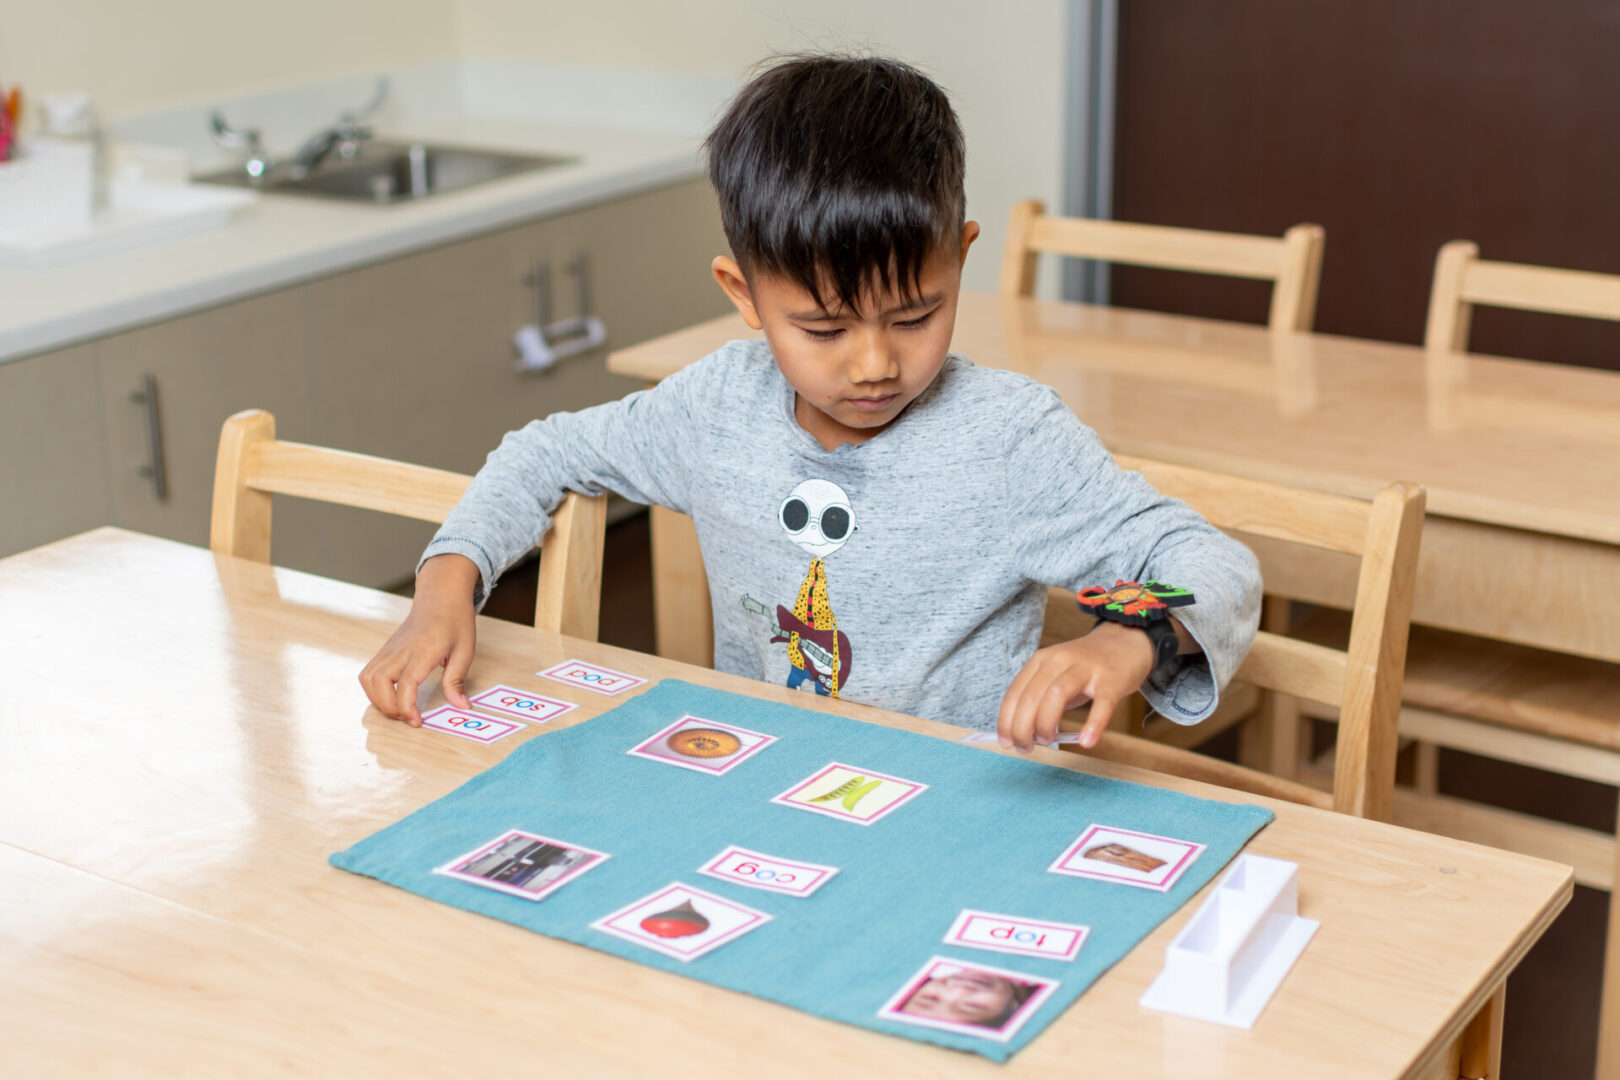 A boy playing with educational photocards